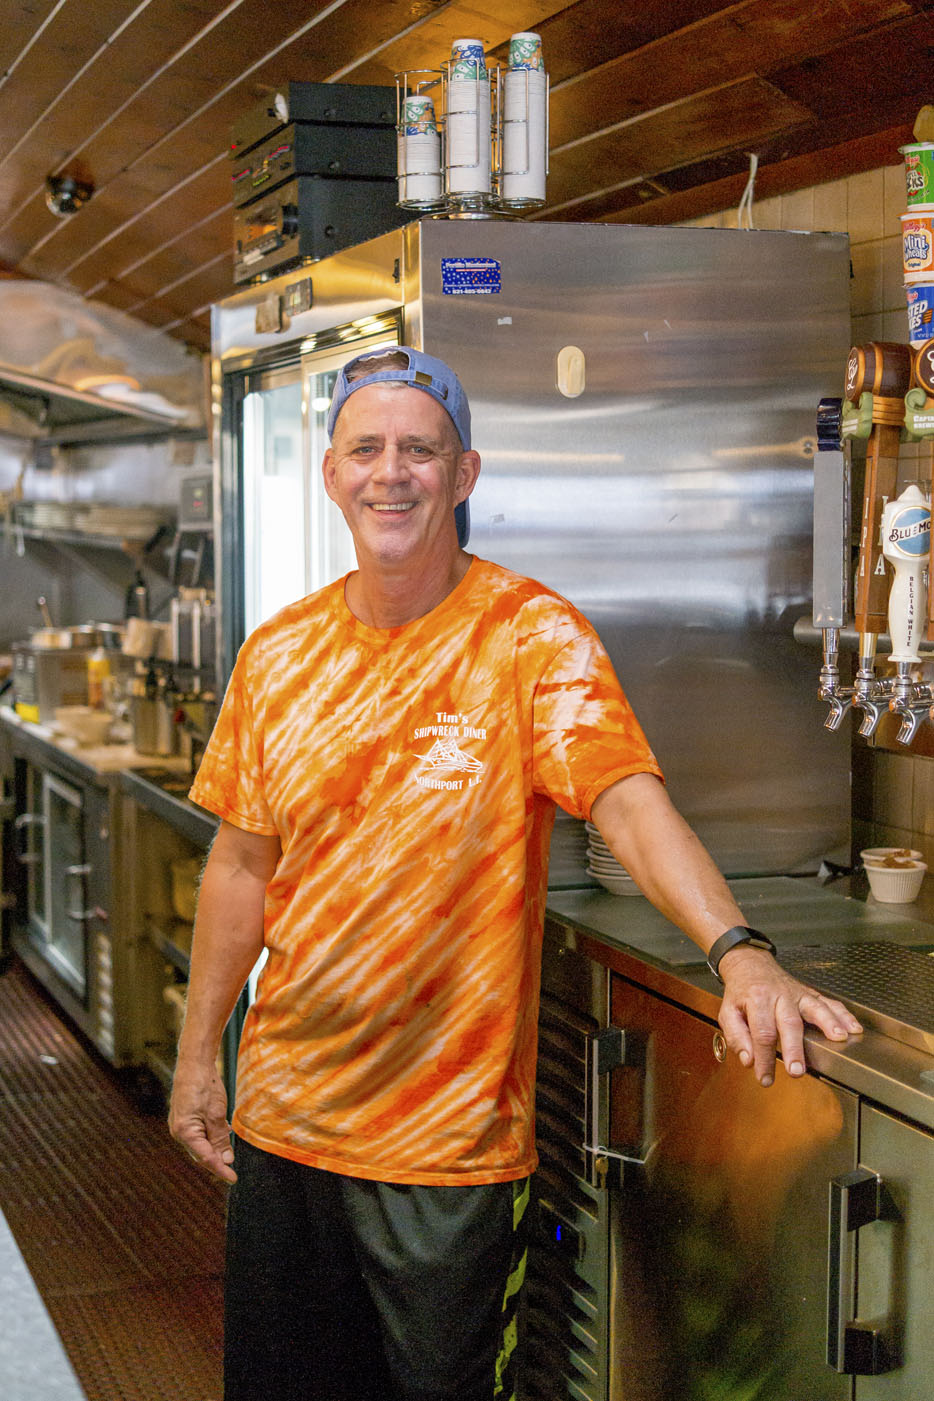 Tim Hess, owner of Tim's Shipwreck Diner, donned the captain's hat after his father, Otto, sold him the establishment in 1996.